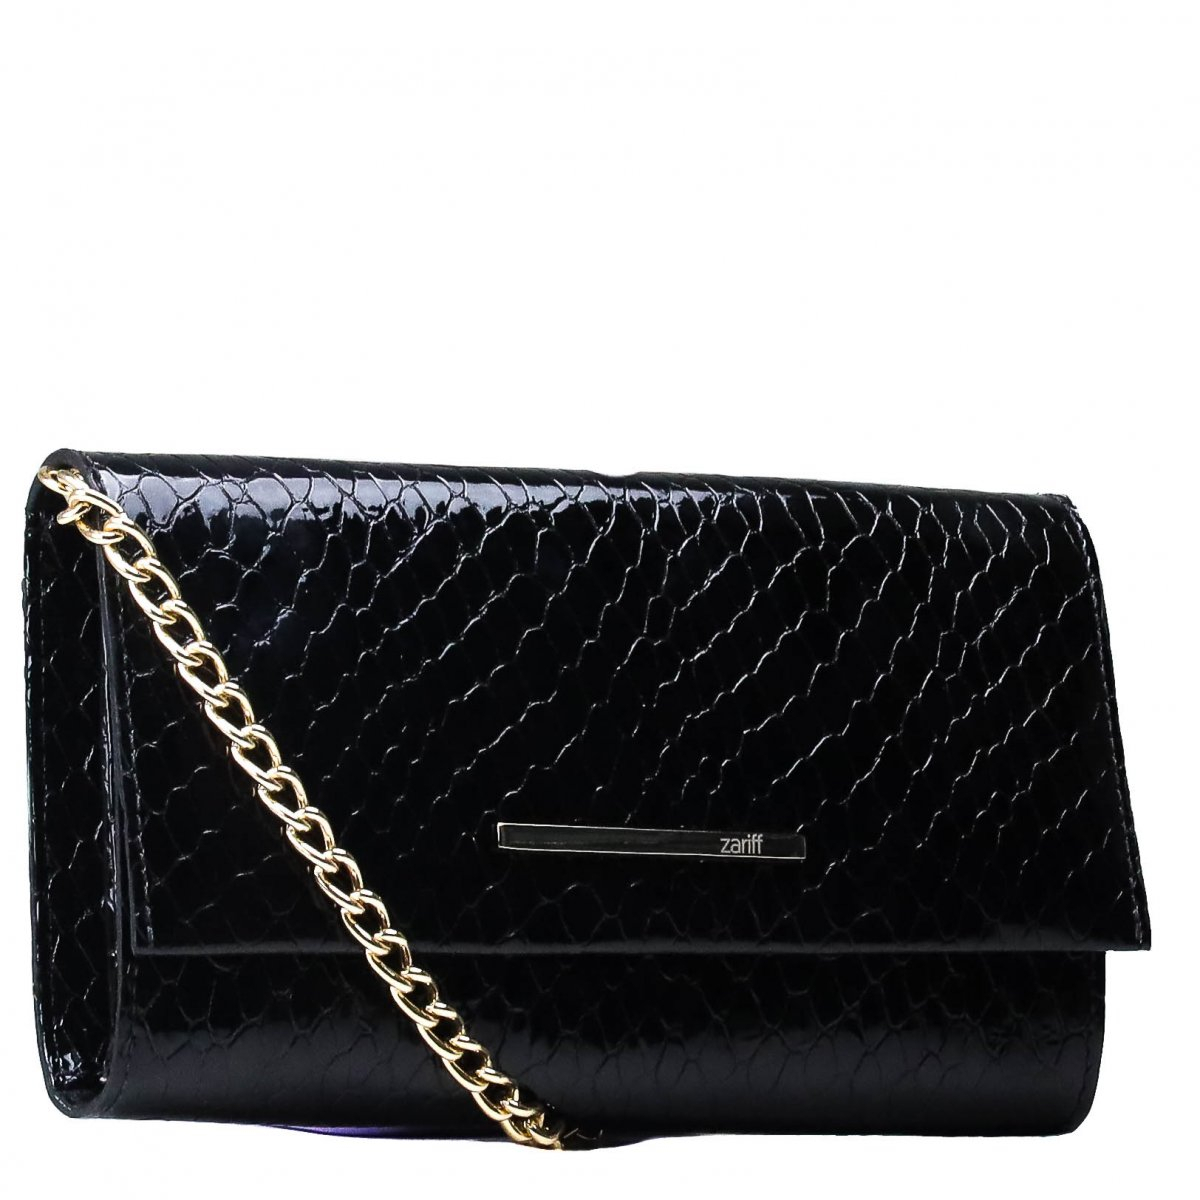 Bolsa Zariff Shoes Clutch Croco Preto